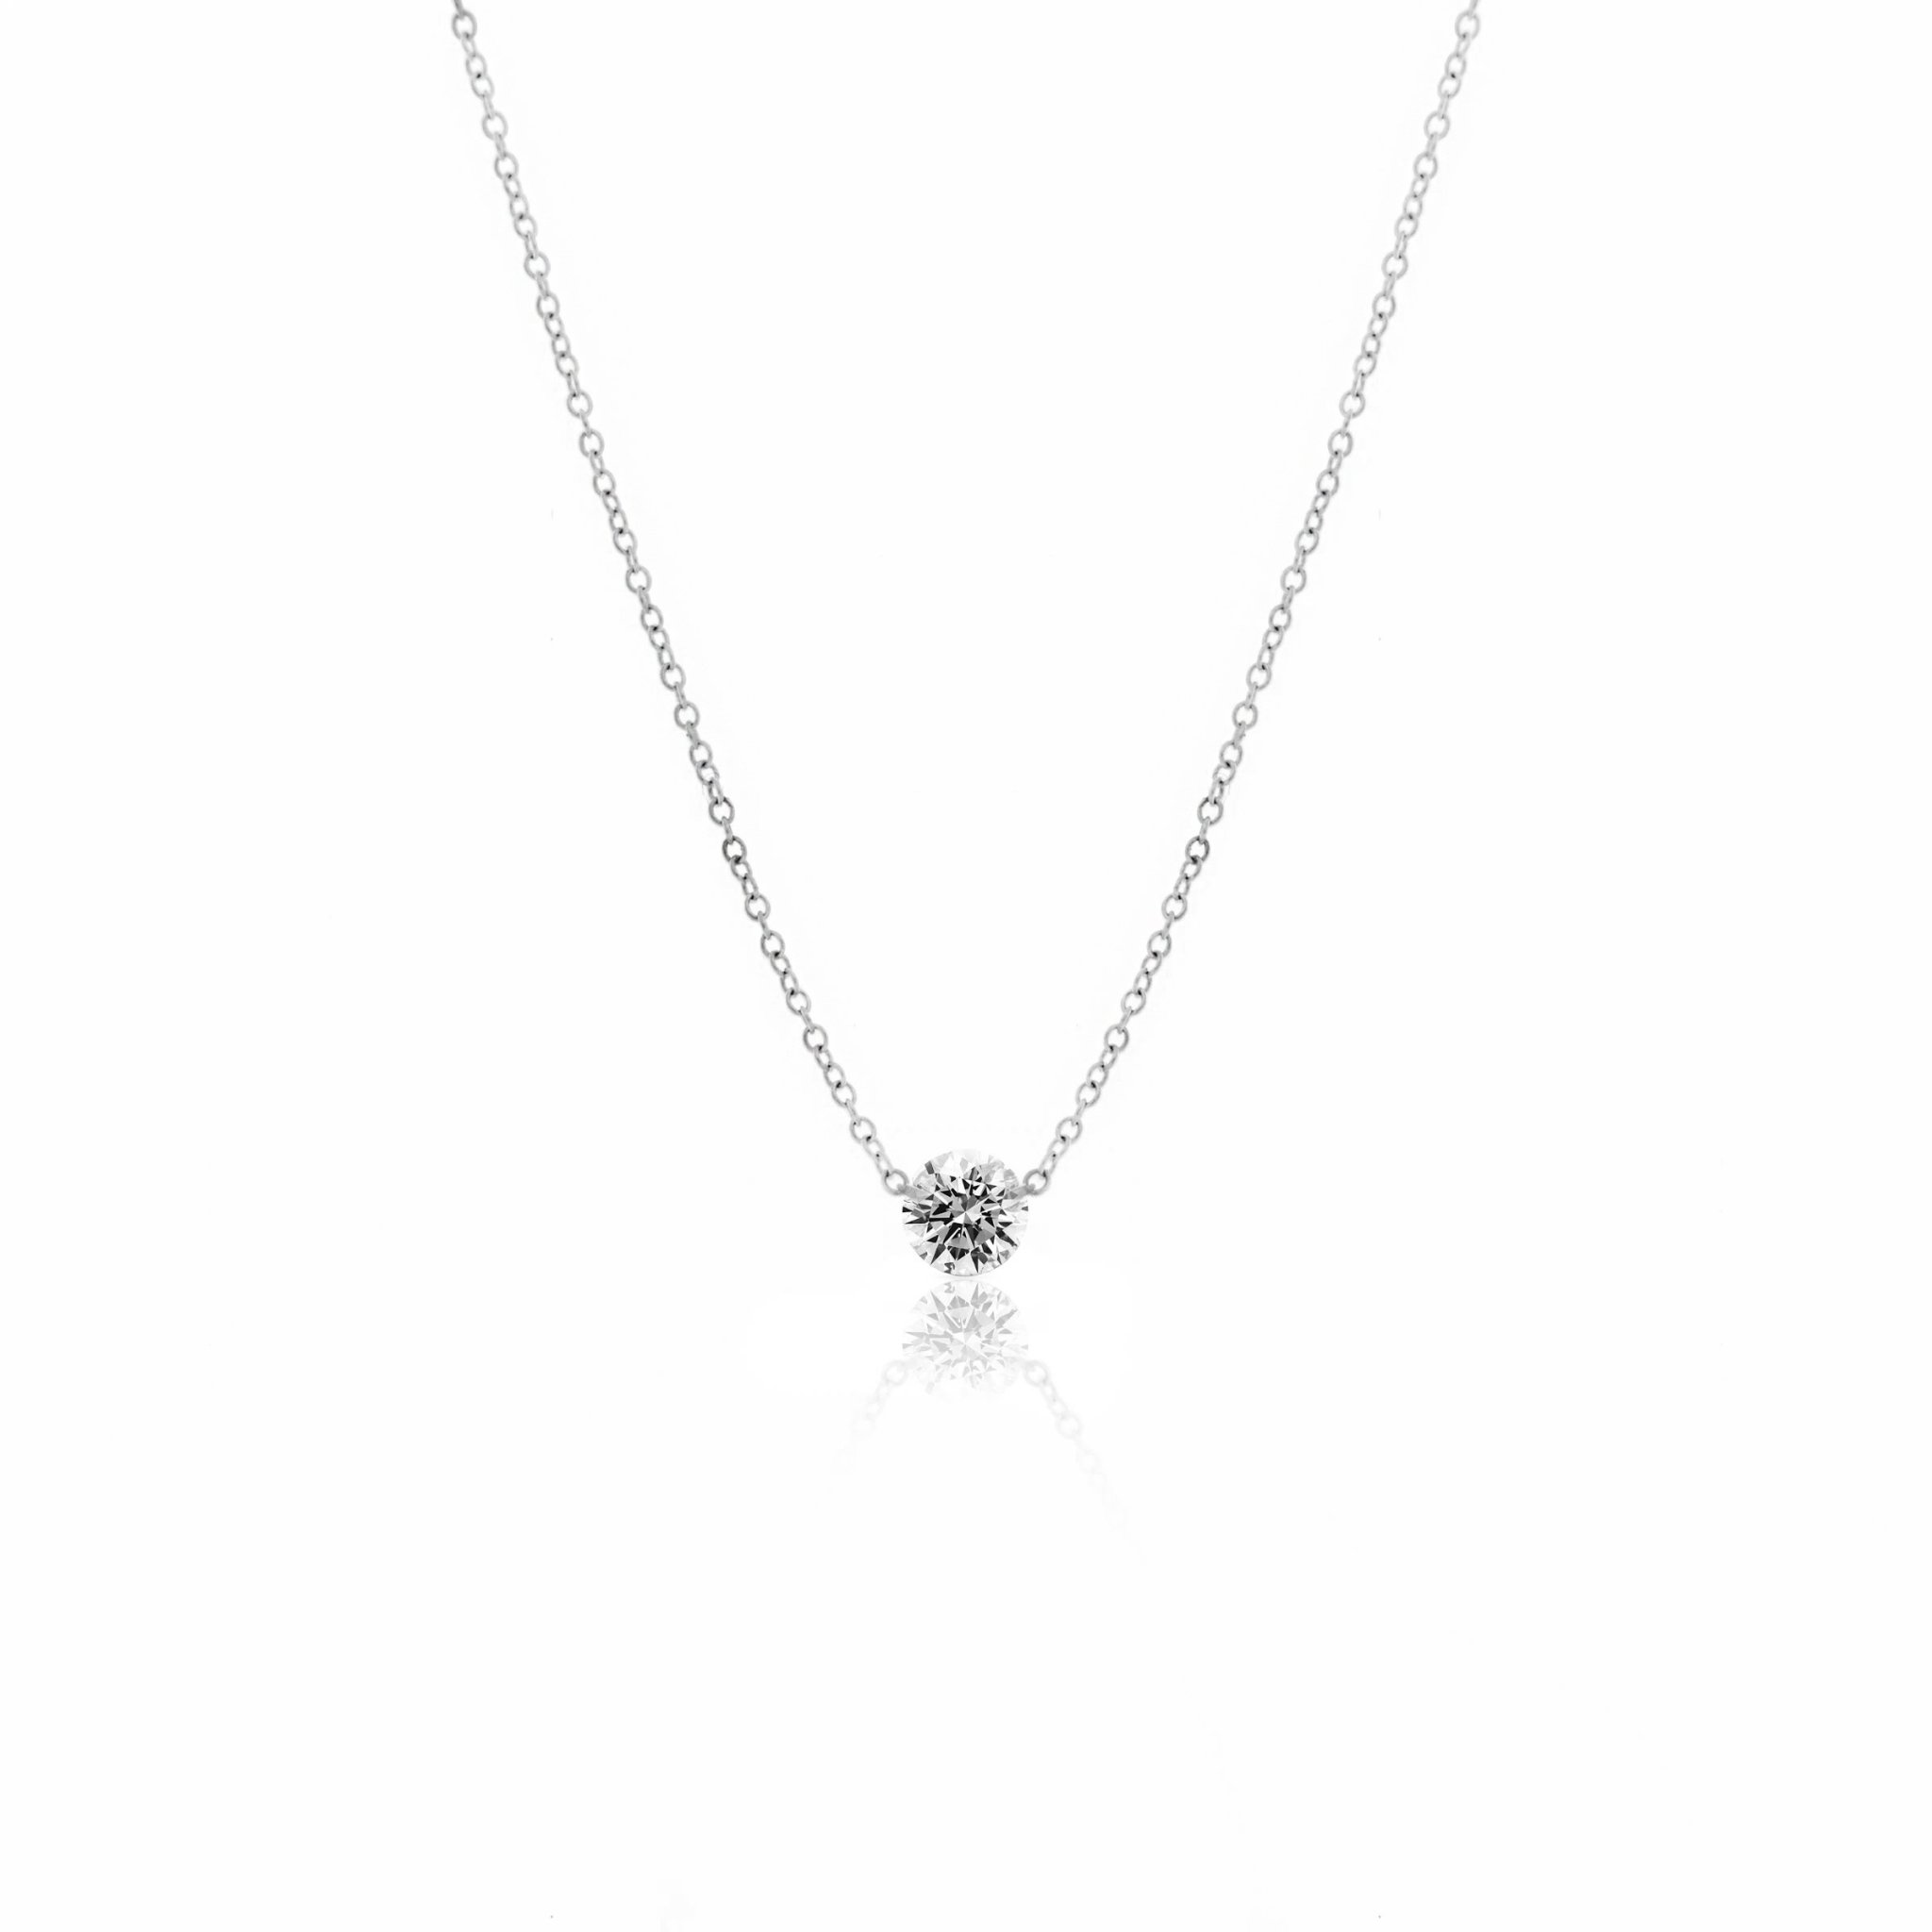 Meira T 14kt Gold Drilled Diamond Necklace 0.30 carat